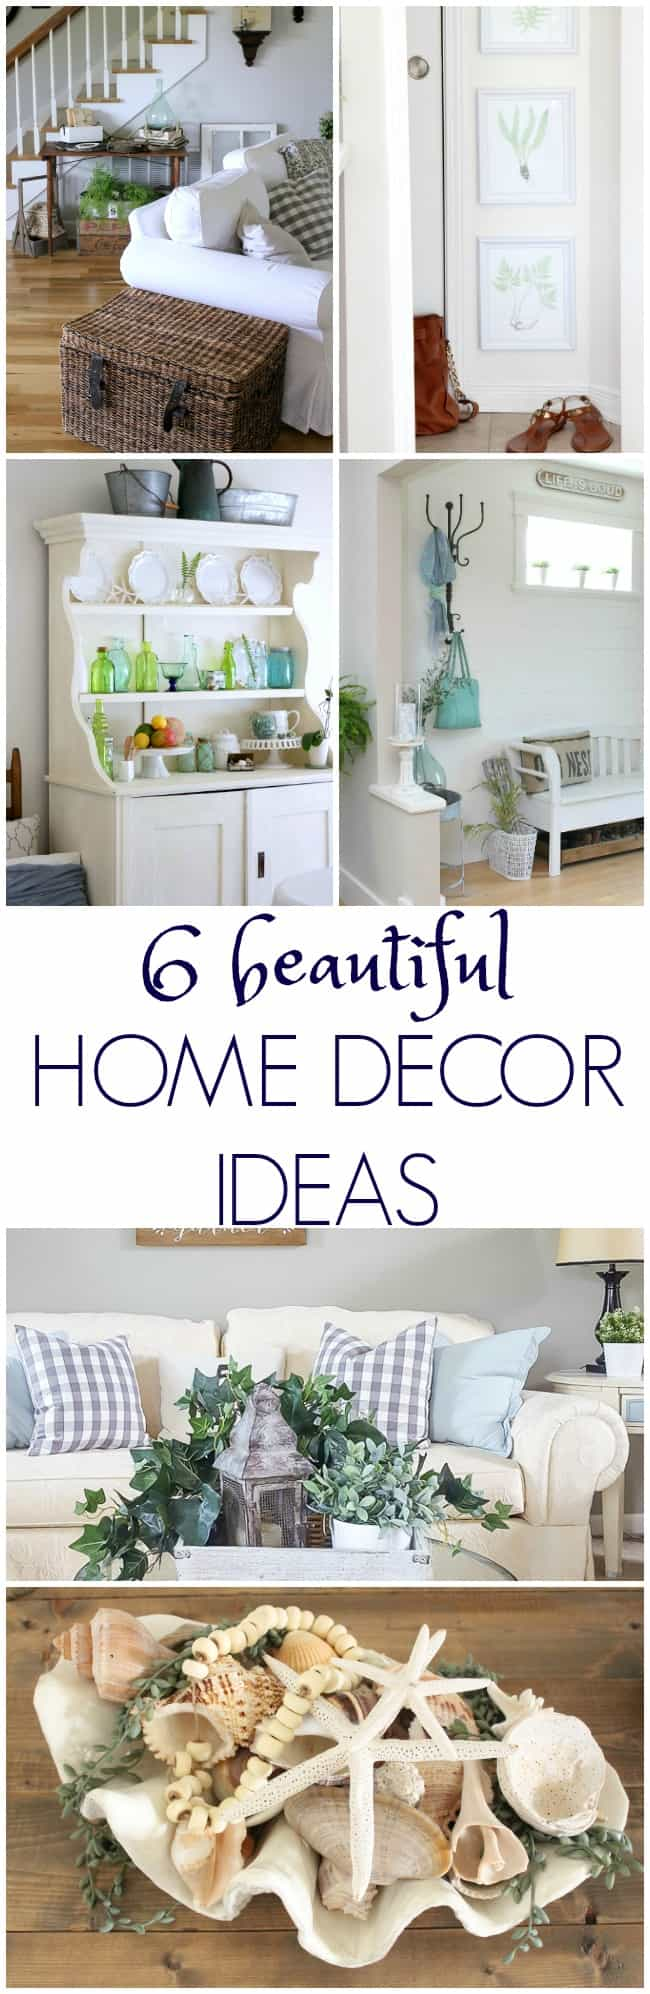 6 beautiful home decor ideas work it wednesday the happy housie - Gorgeous home decoration inspiration ideas for you ...